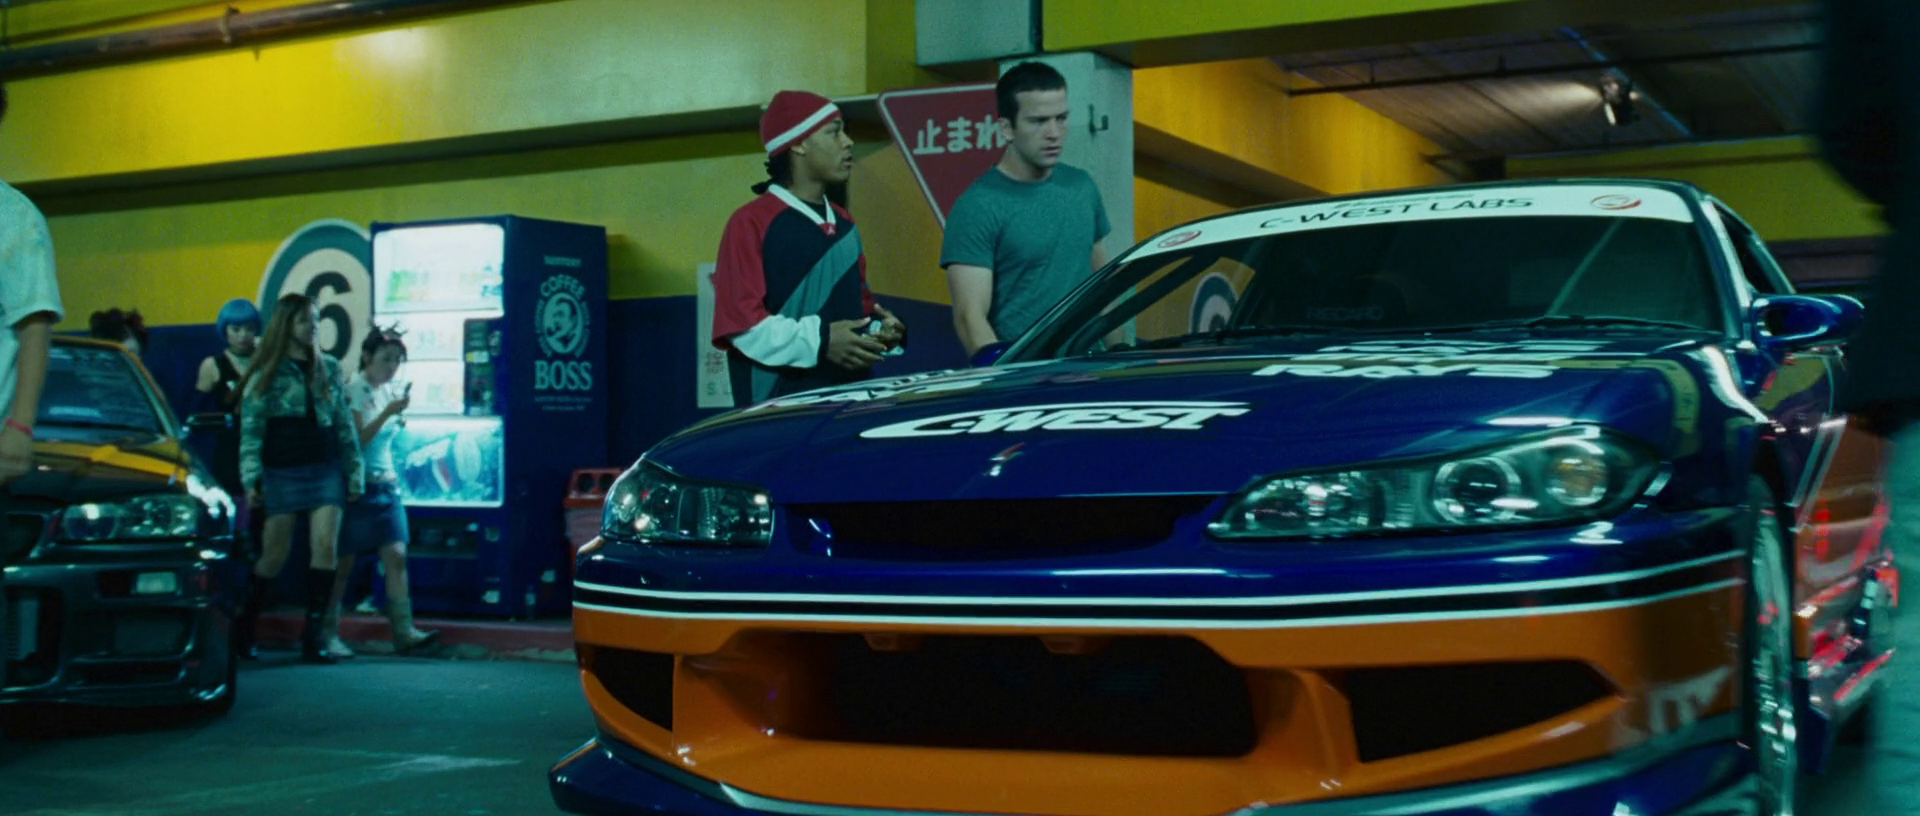 2001 nissan silvia s15 spec s the fast and the furious wiki2001 nissan silvia s15 spec s